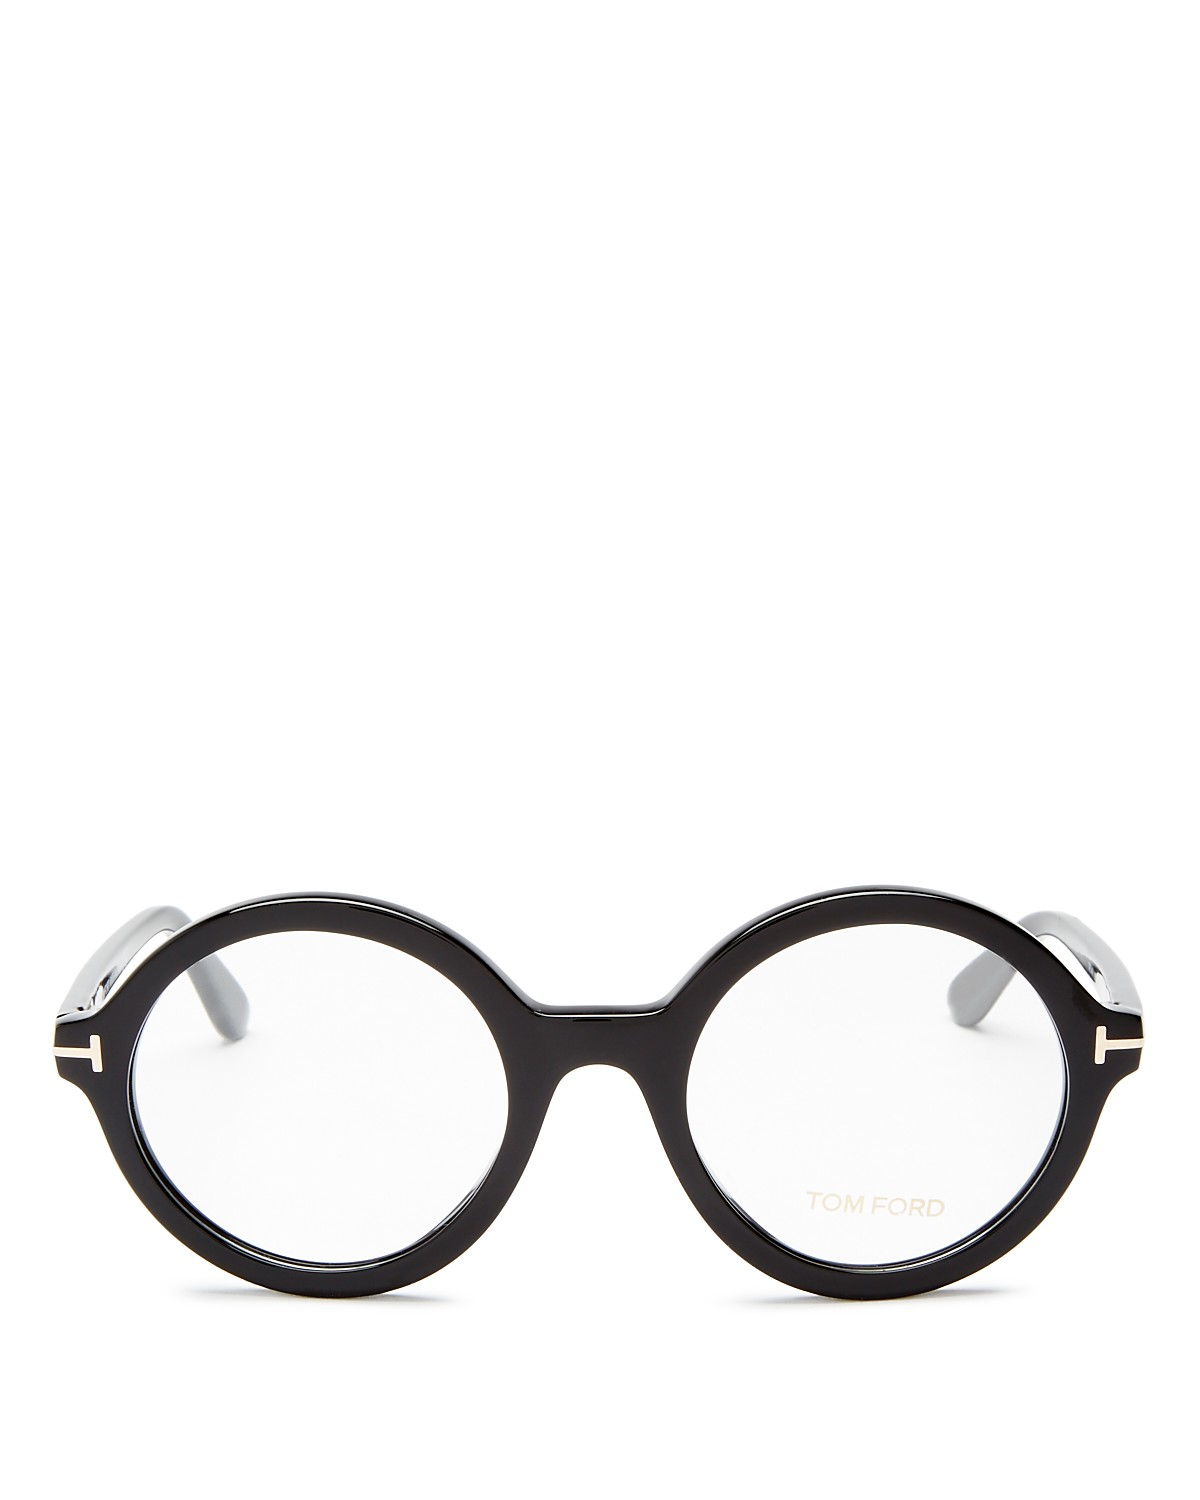 These Are The Best Glasses Frames That Look Super Flattering On ...